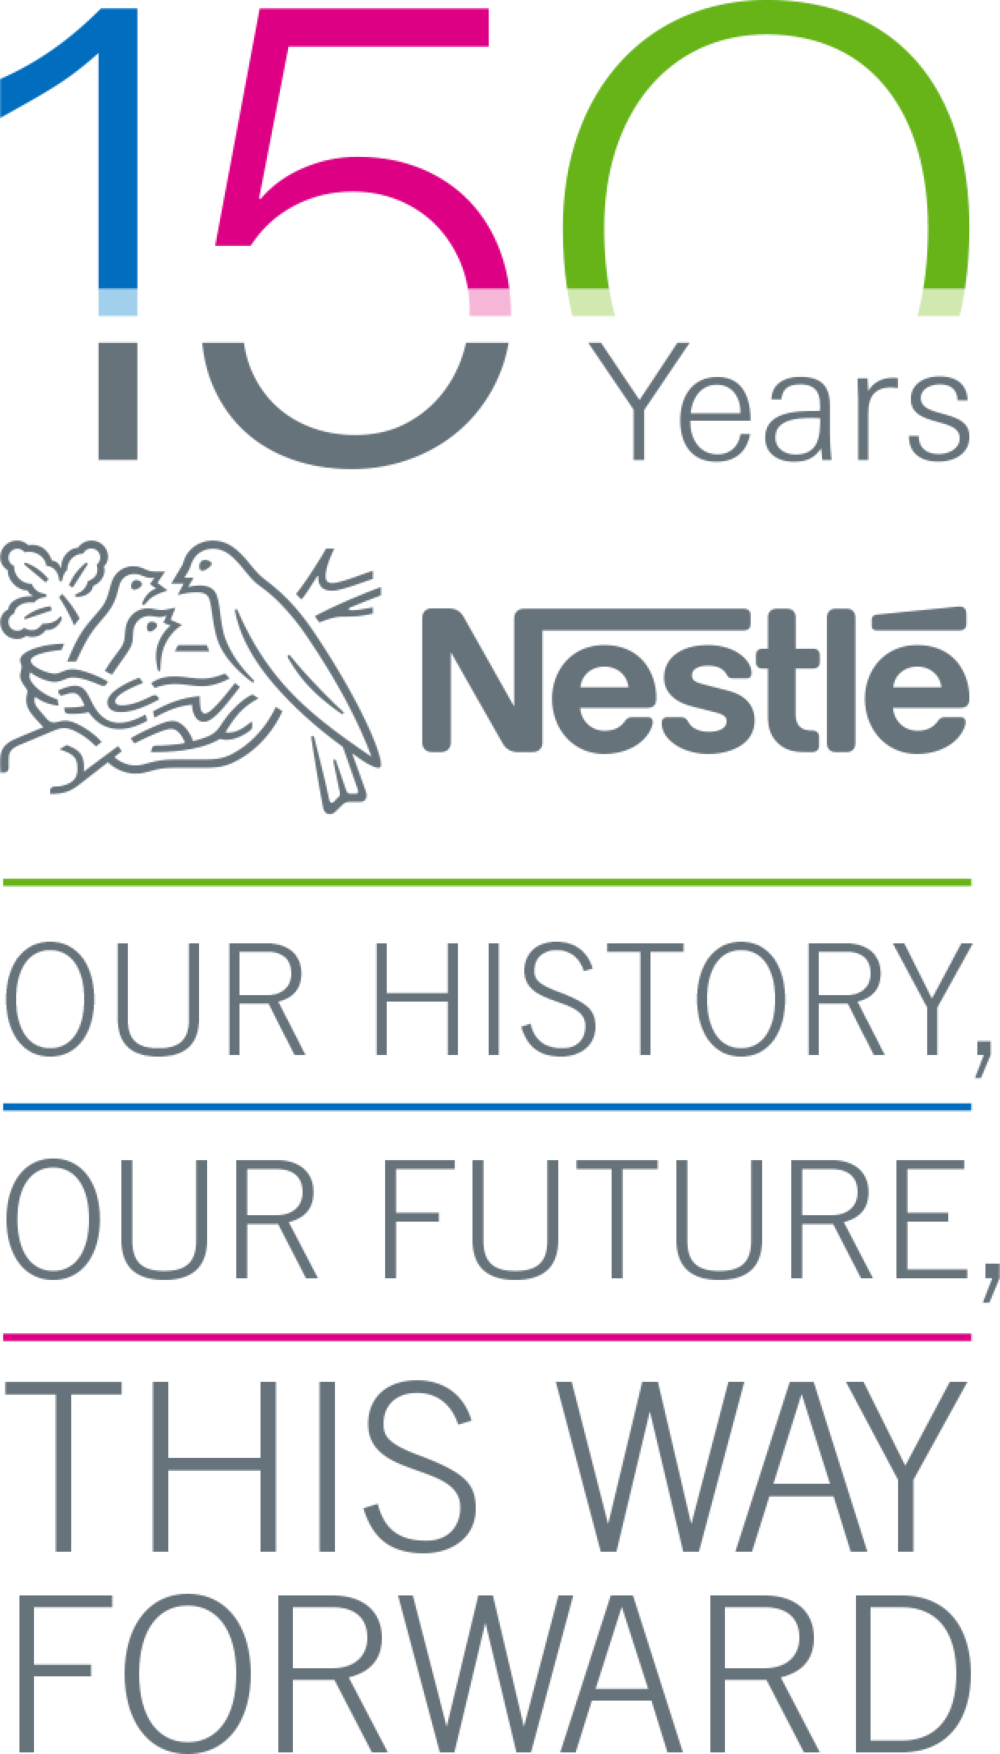 151430_Nestle150th_PhotoBG_R3_LogoOnly.png